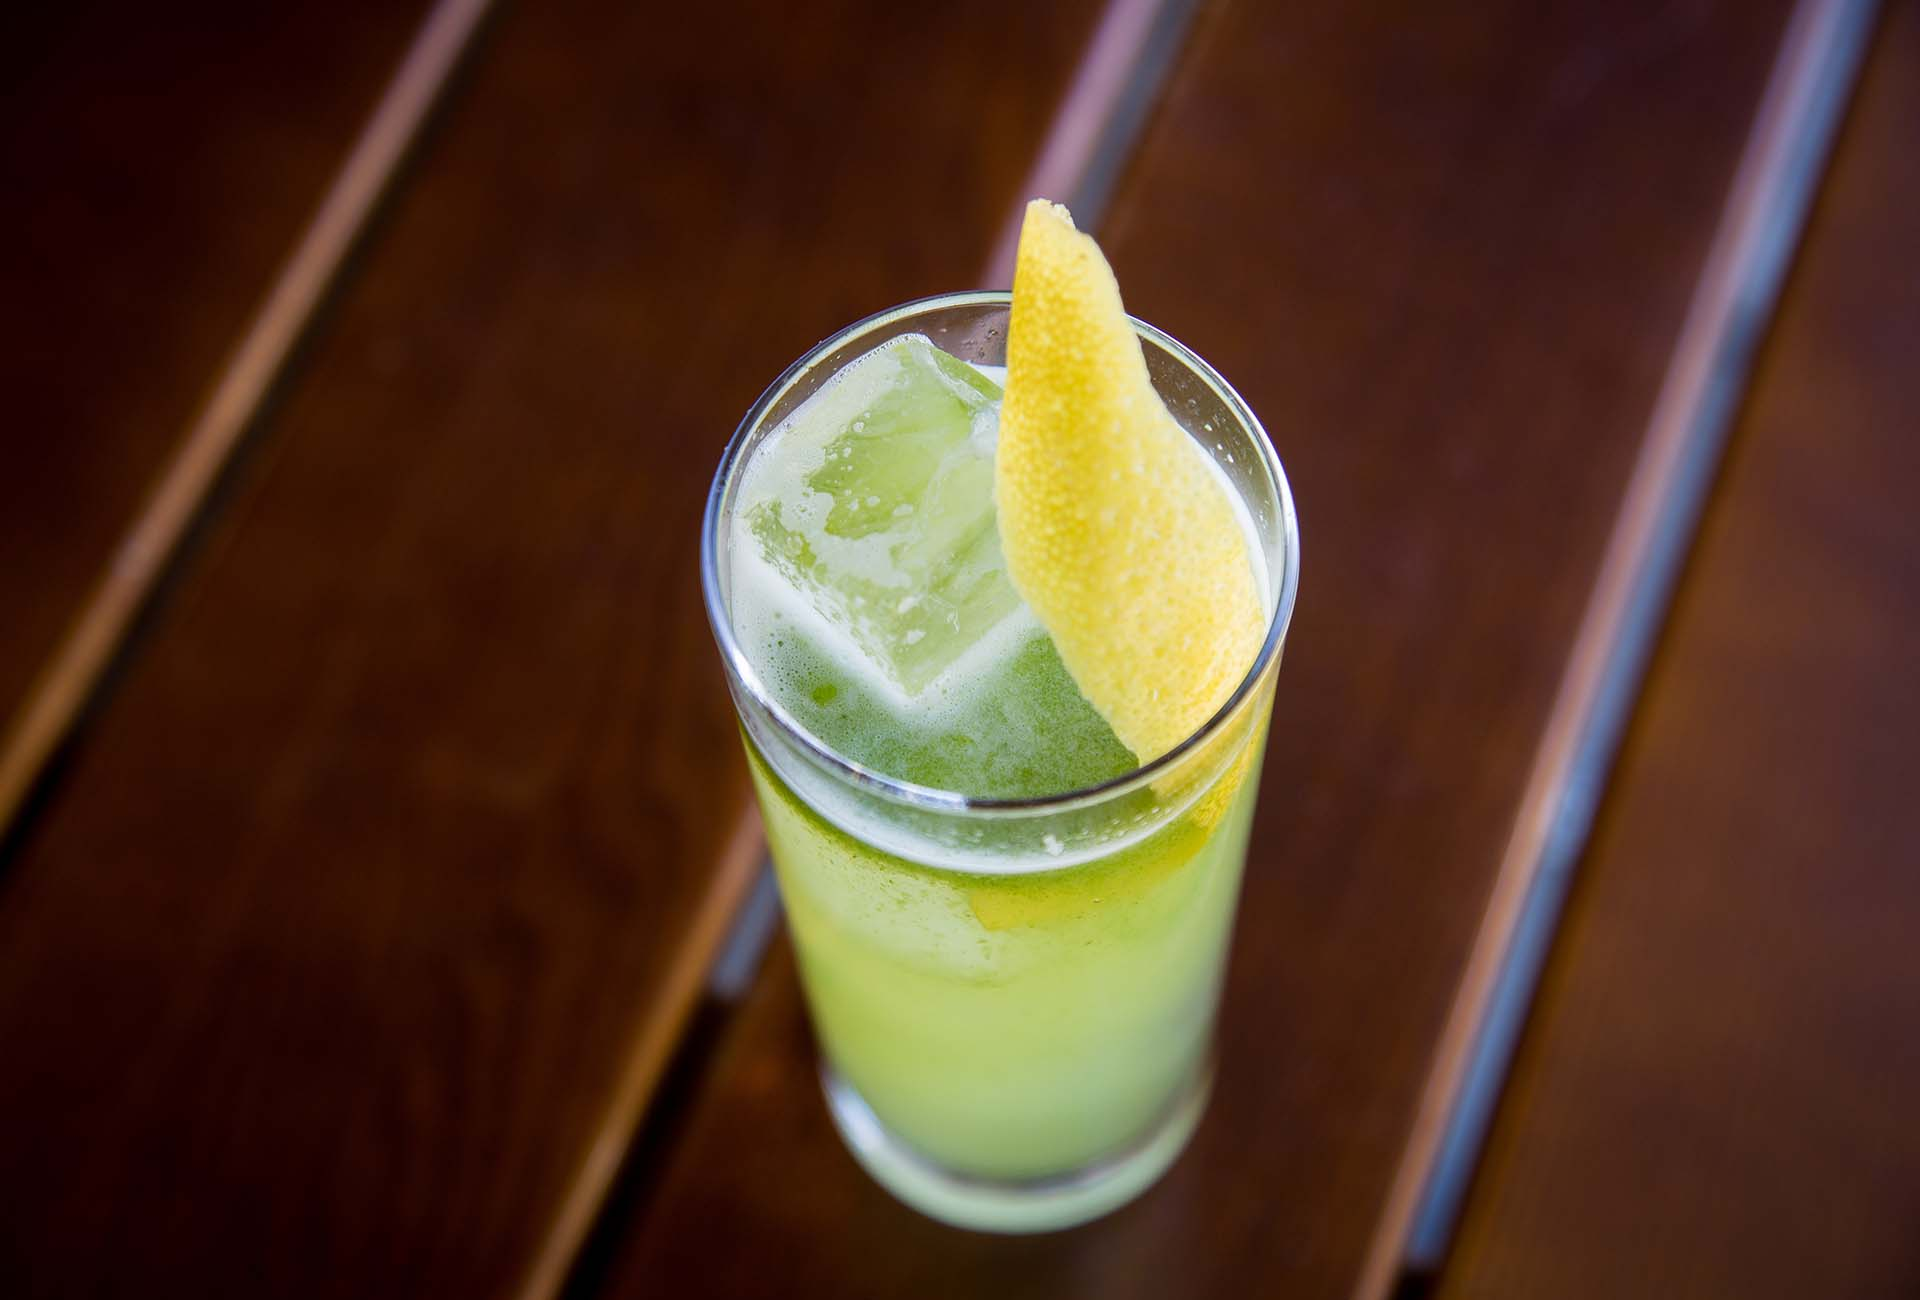 The Tarragon is a simple refreshing drink using tarragon syrup lemon and soda